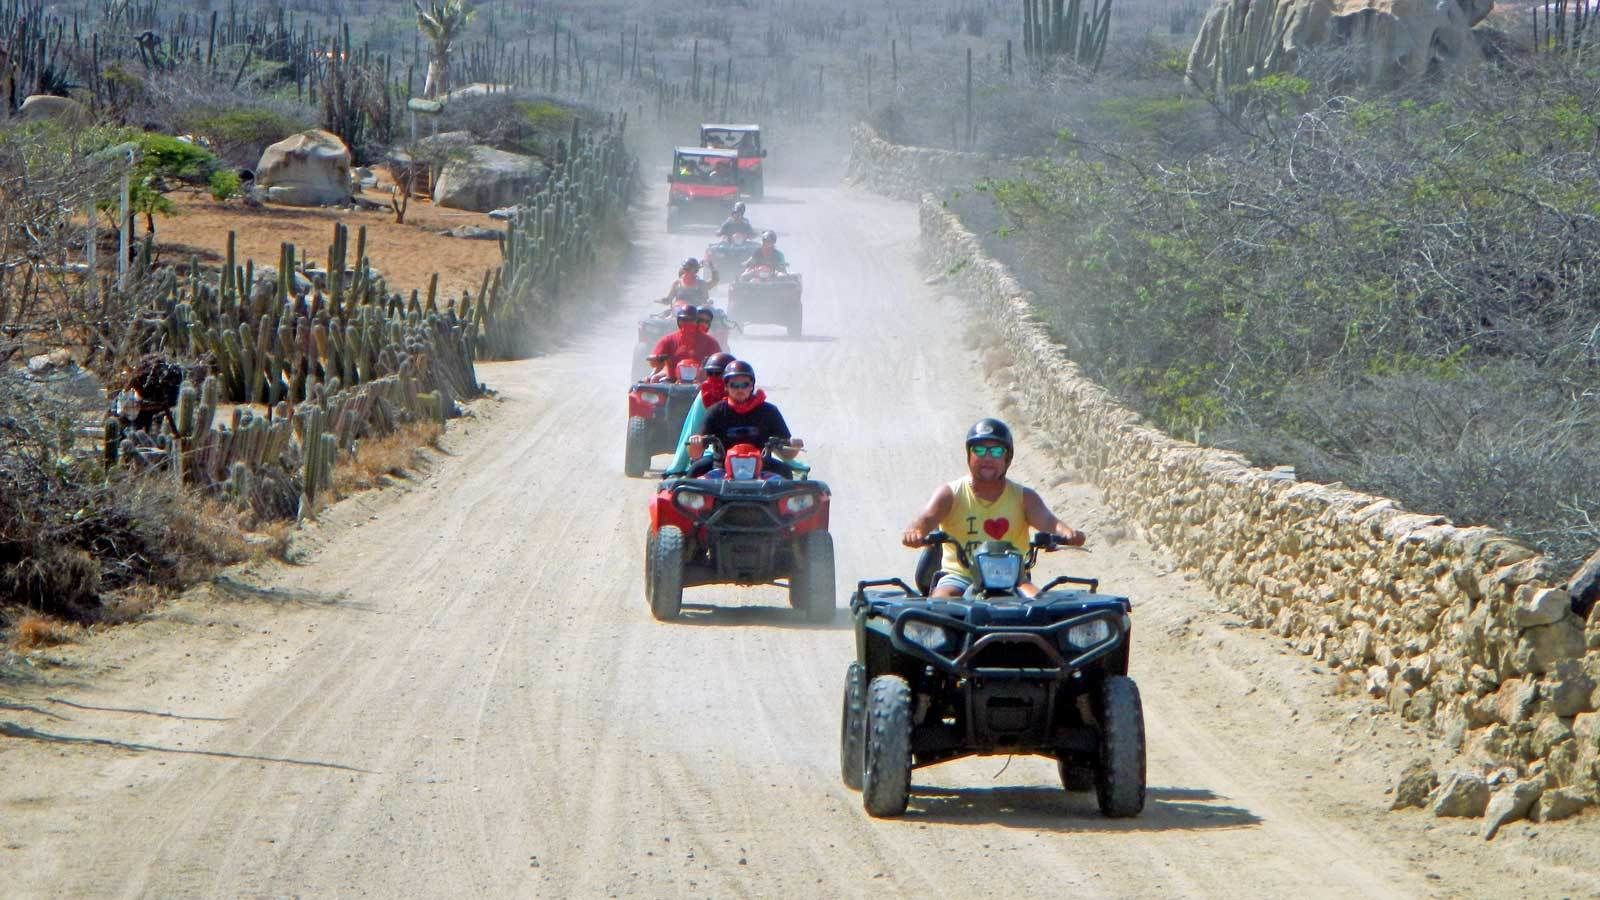 ATVs kicking up dust on a dirt road in Aruba